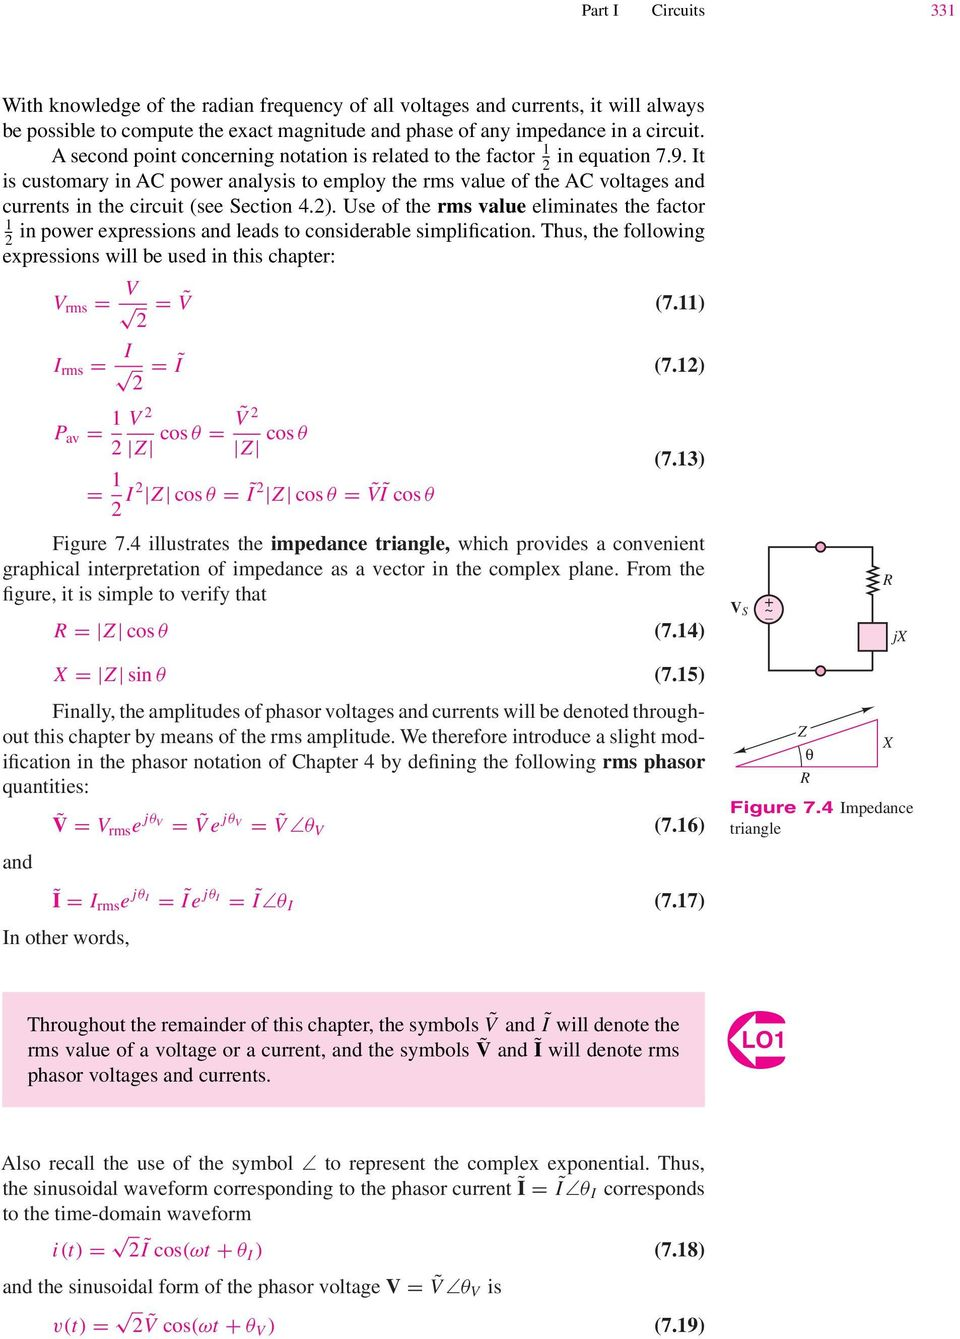 71 Power In Ac Circuits Pdf 12 Parallel It 2 Is Customary Analysis To Employ The Rms Value Of